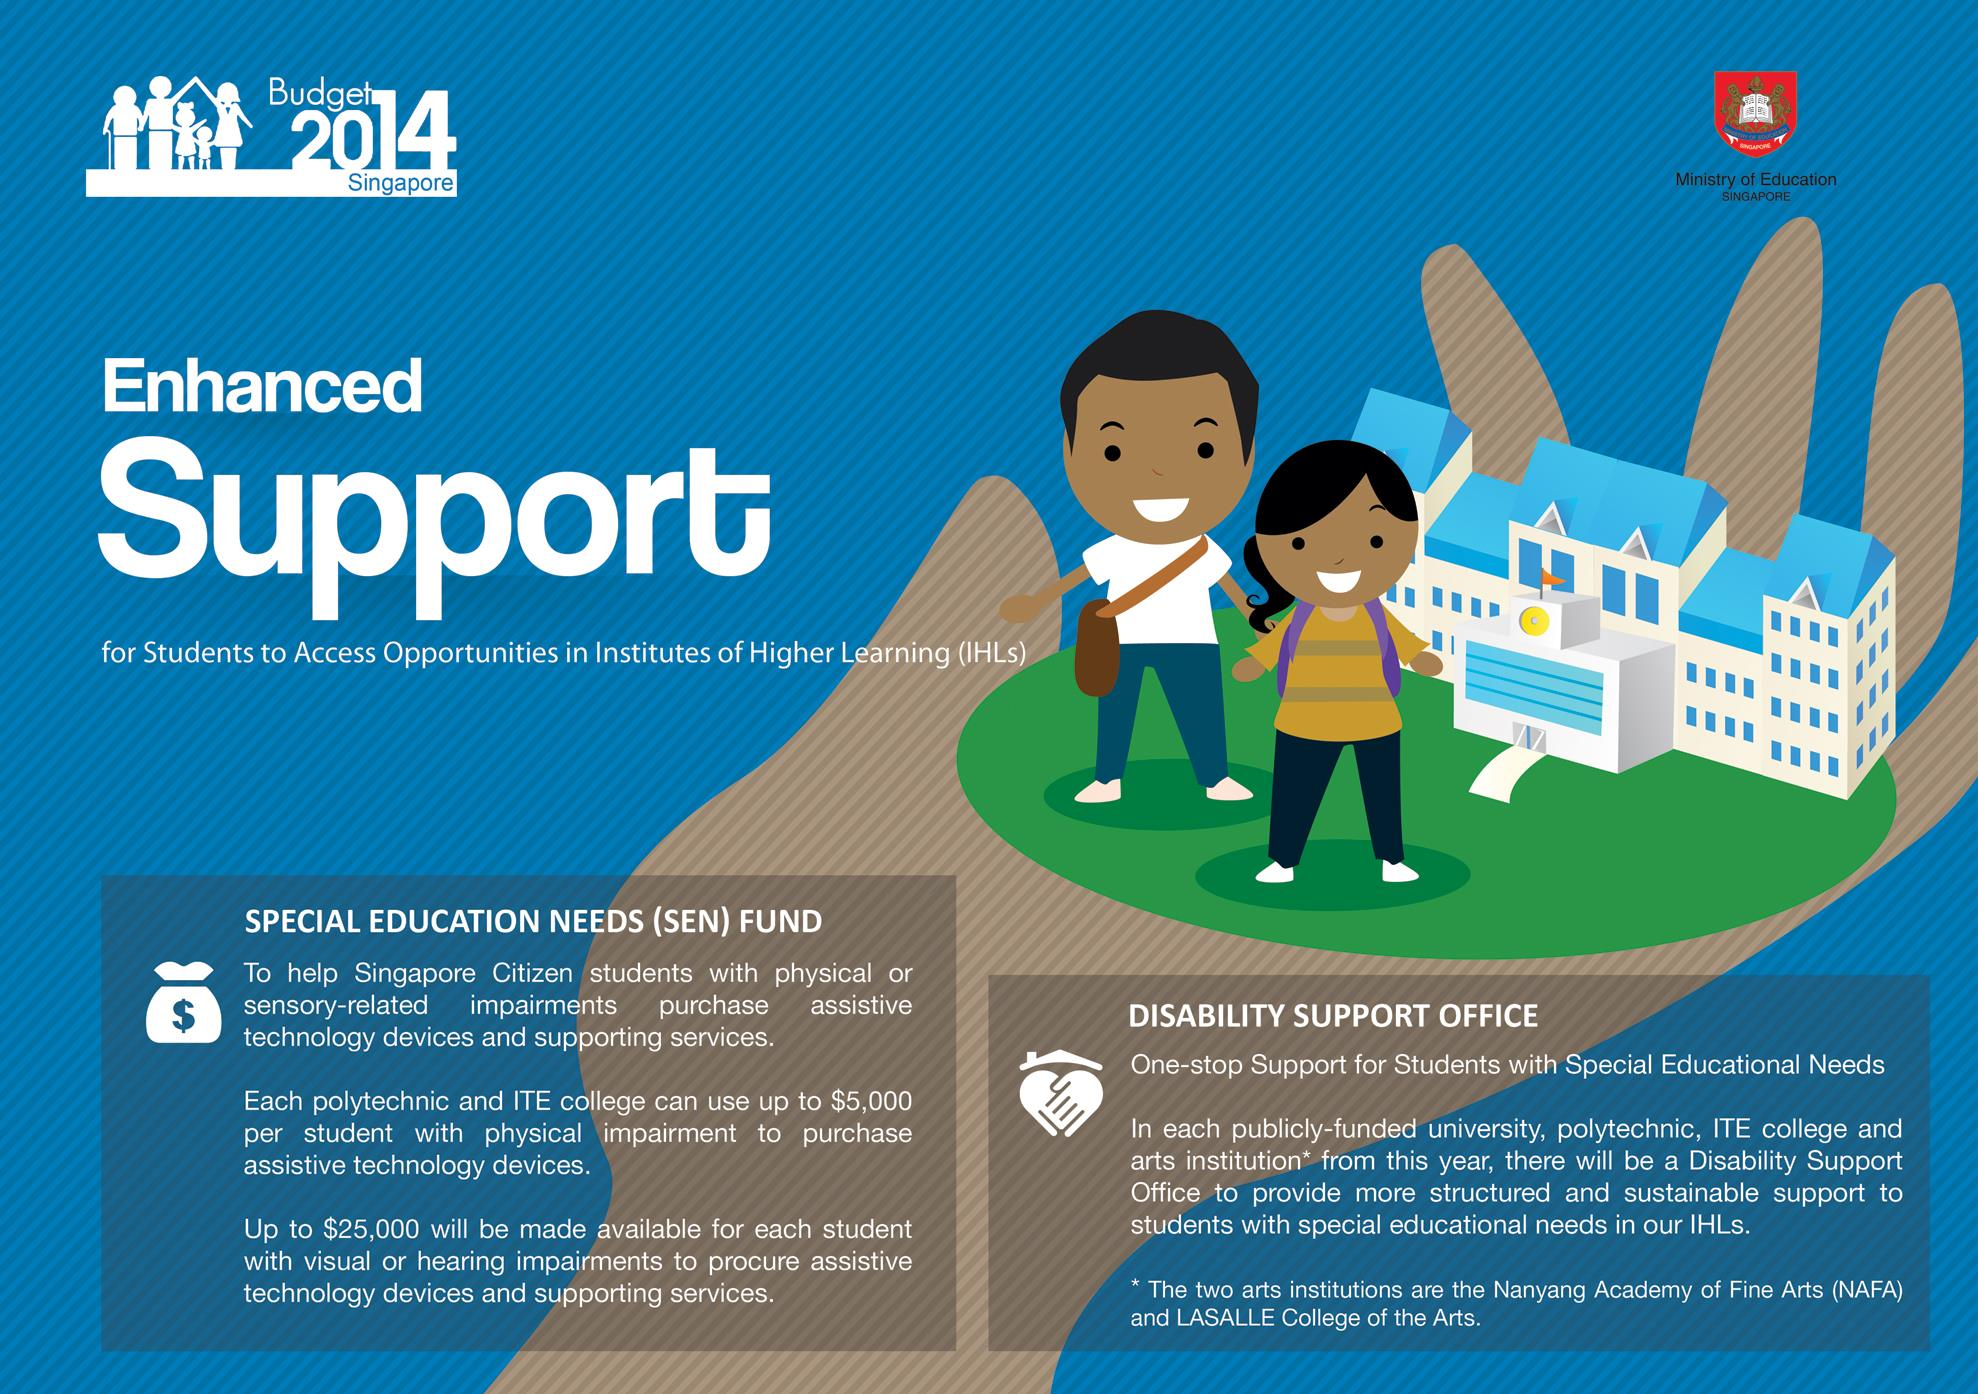 Enhanced Support for Students to Access Opportunities in IHLs